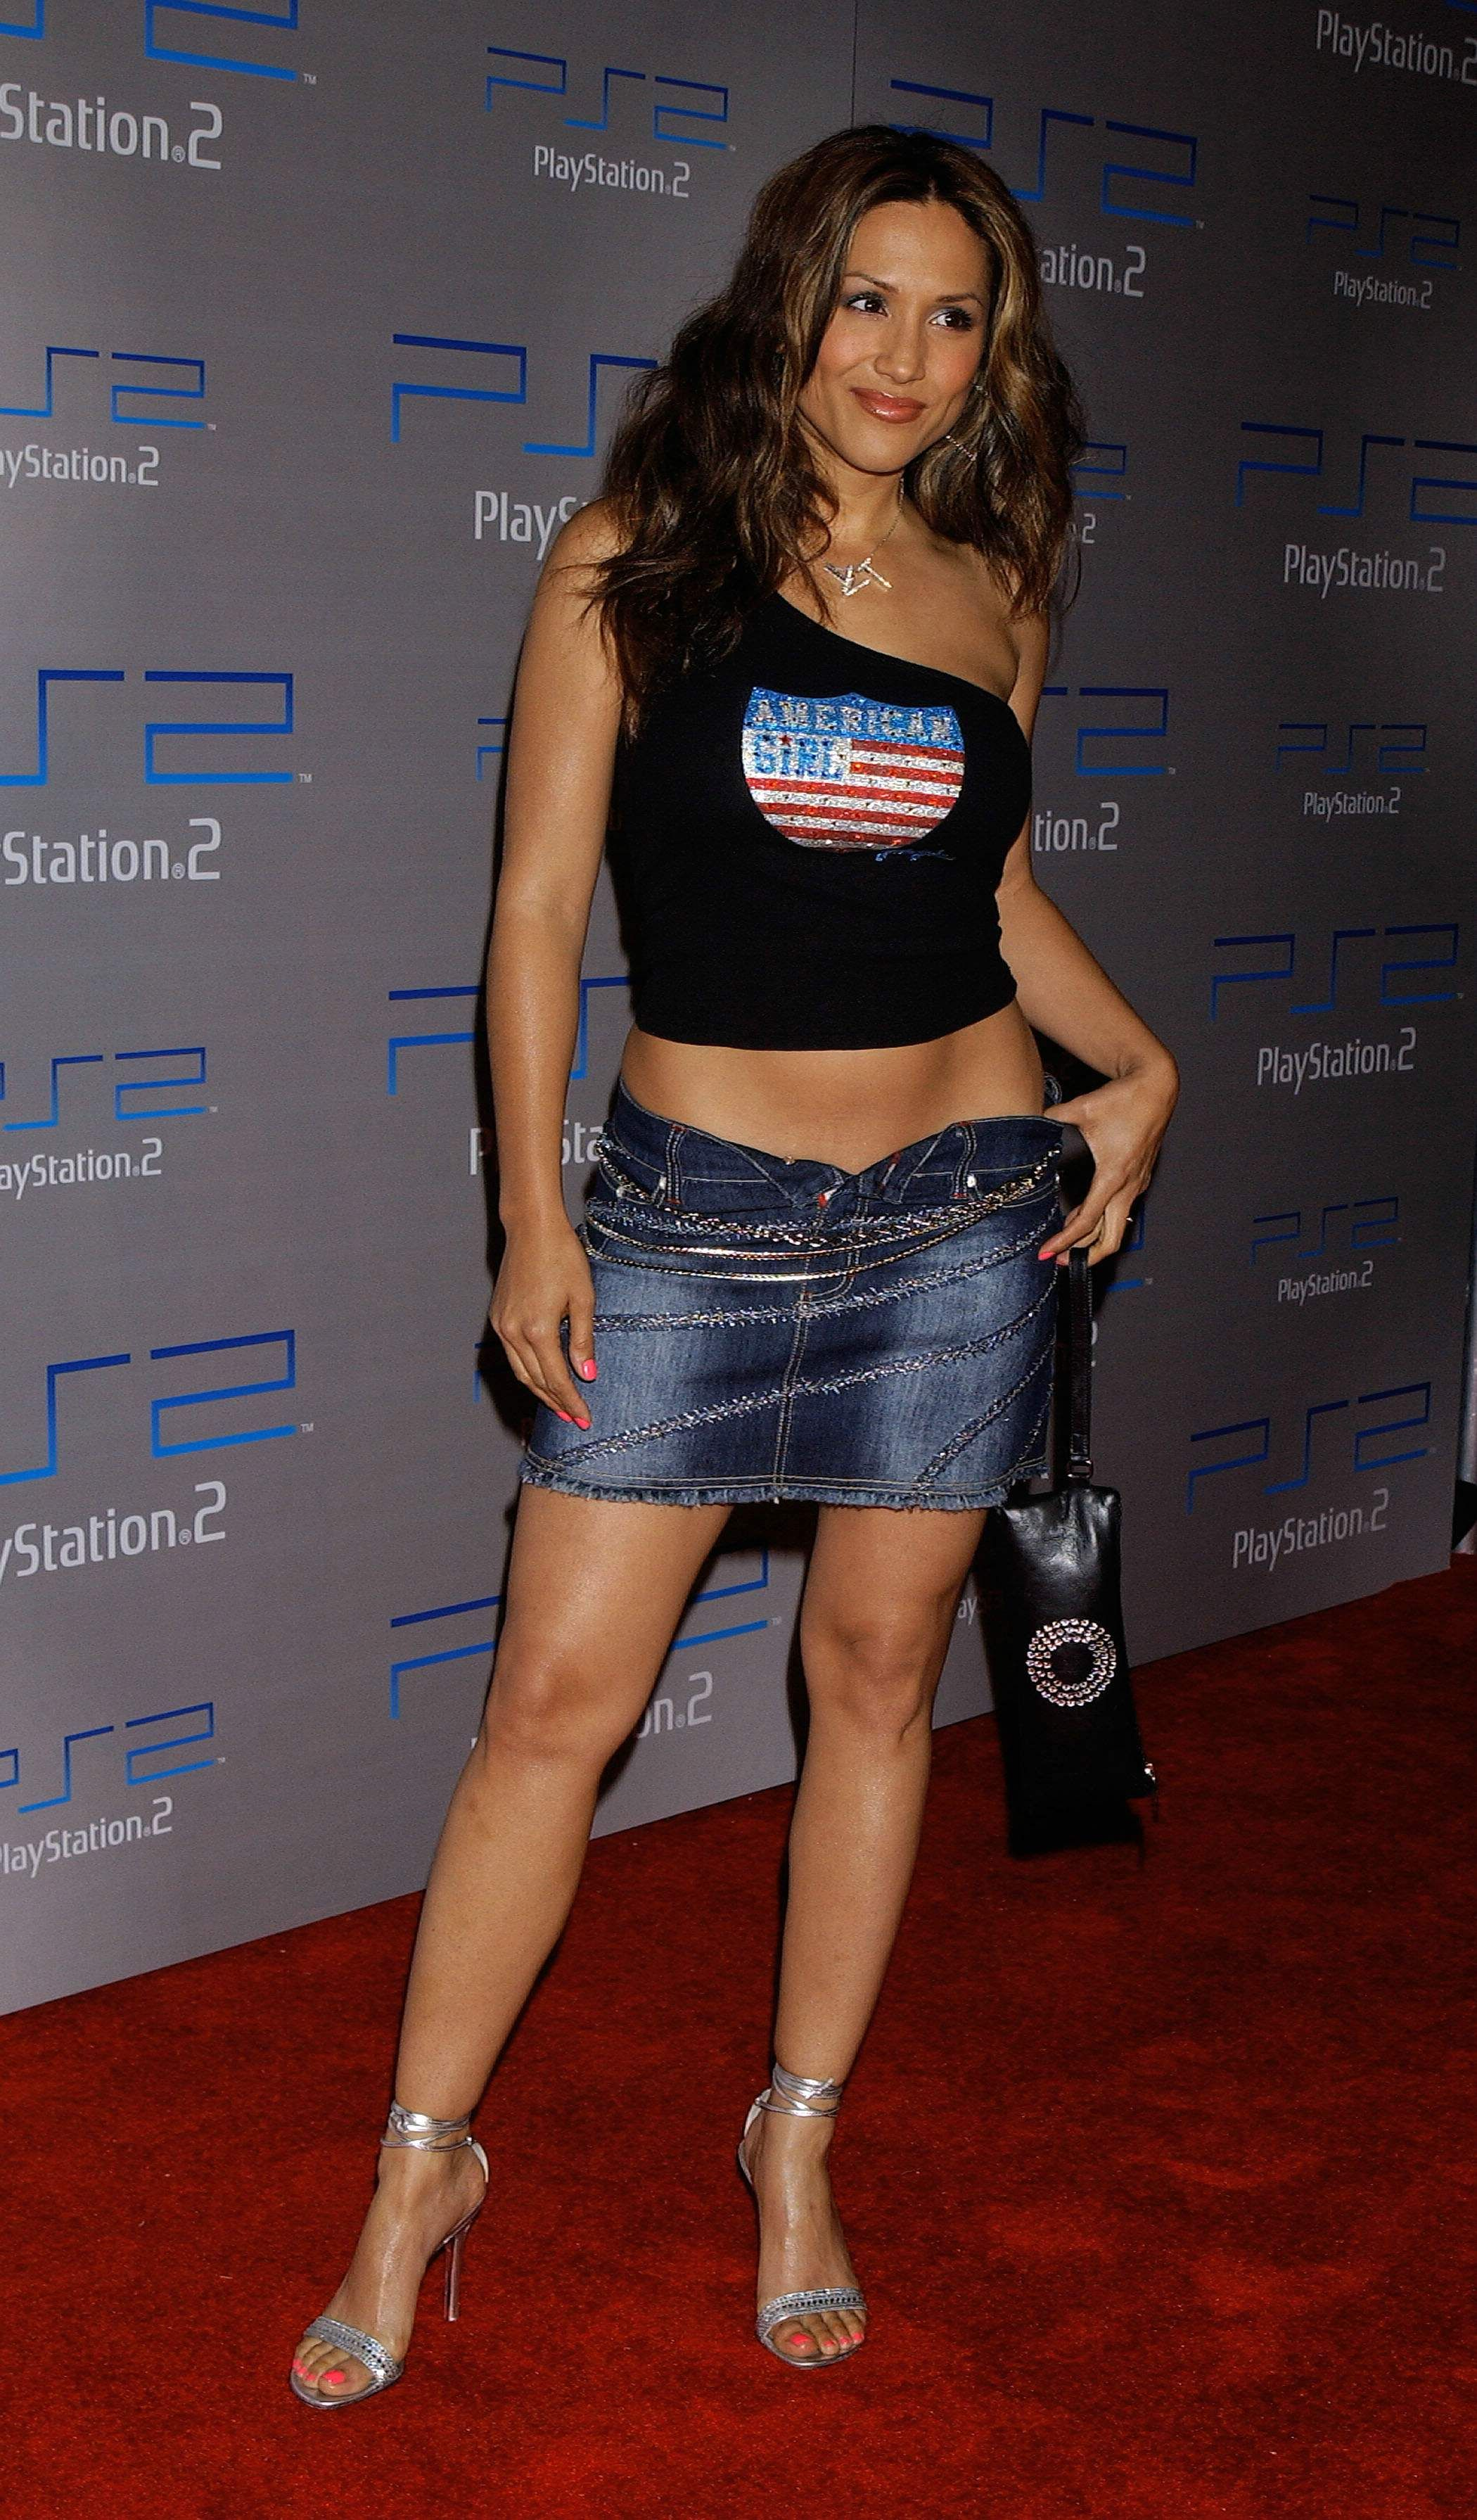 Models leeann tweeden hot sex girl water